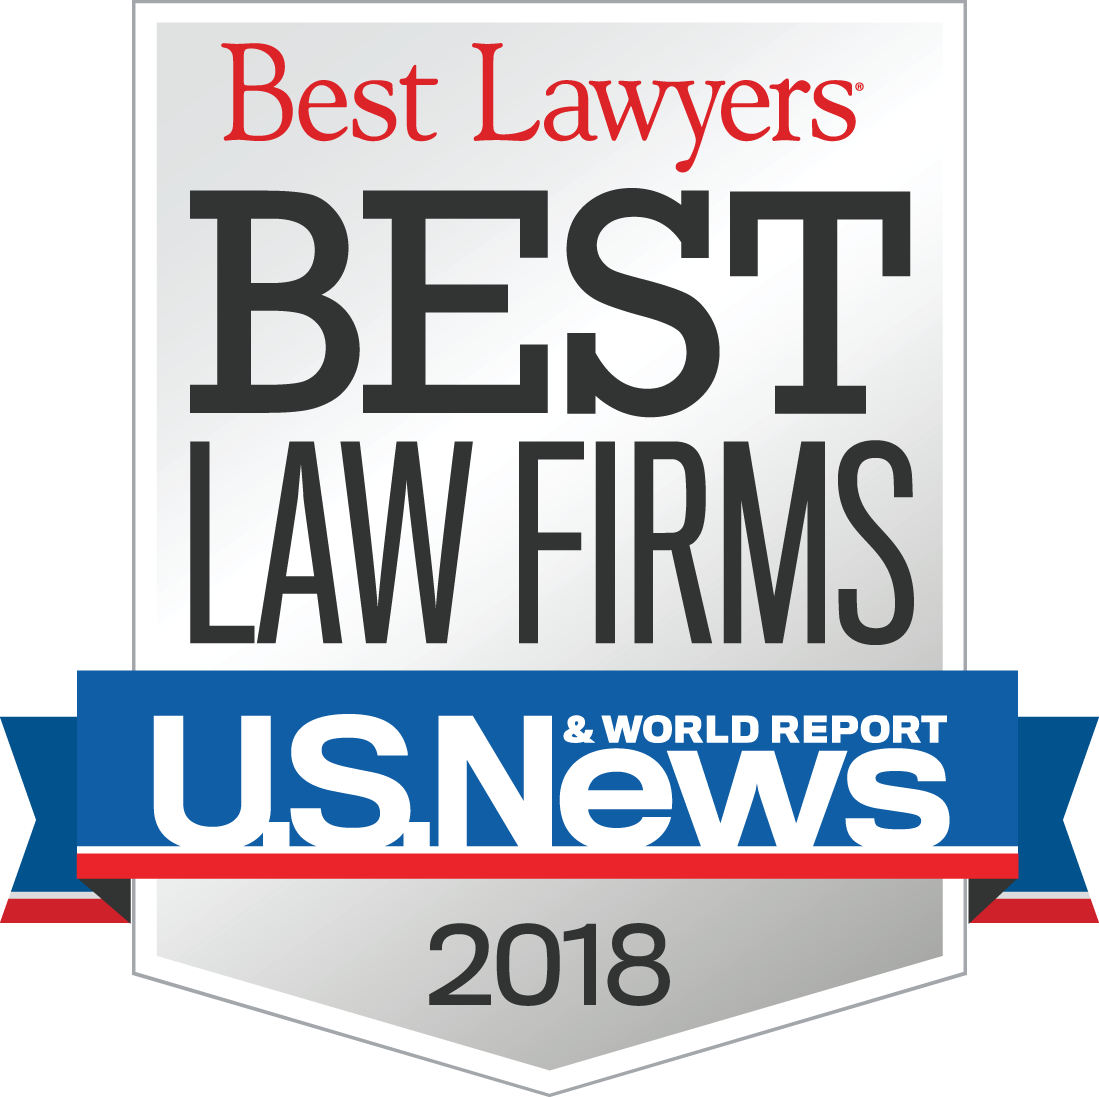 US News Best Law Firm 2018